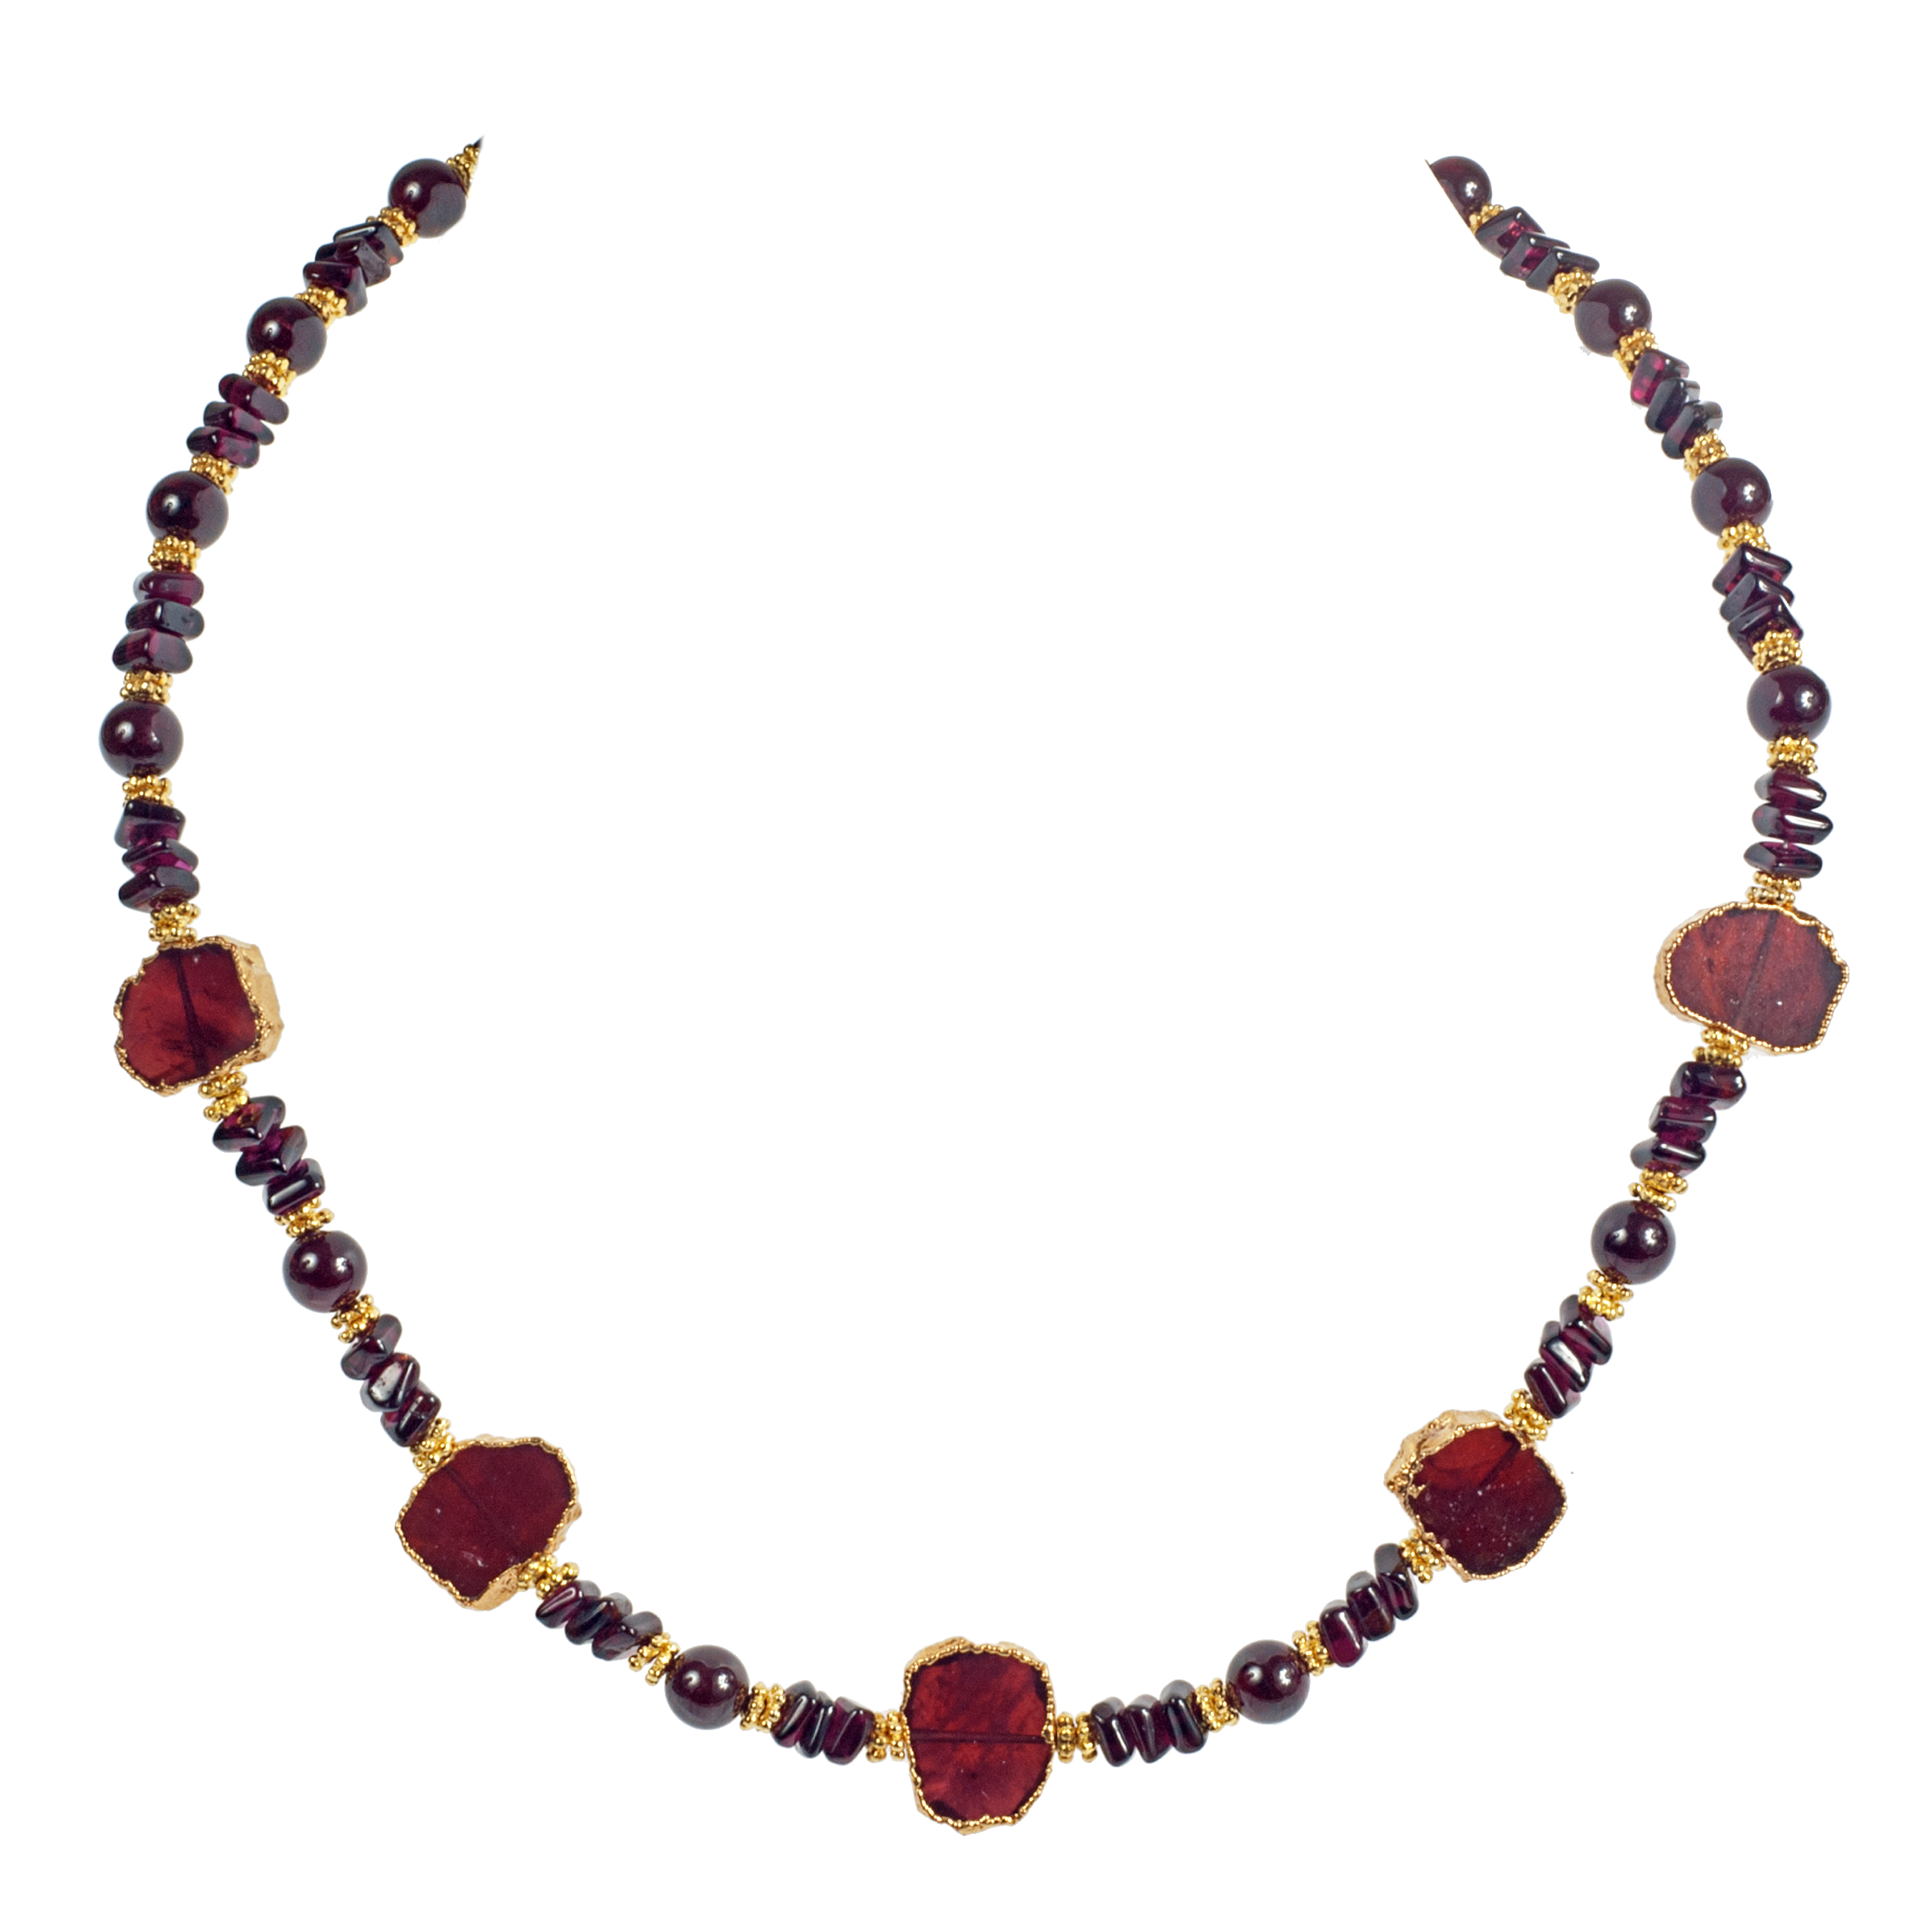 Garnet Slices And Square Cut Long Necklace - KJKStyle